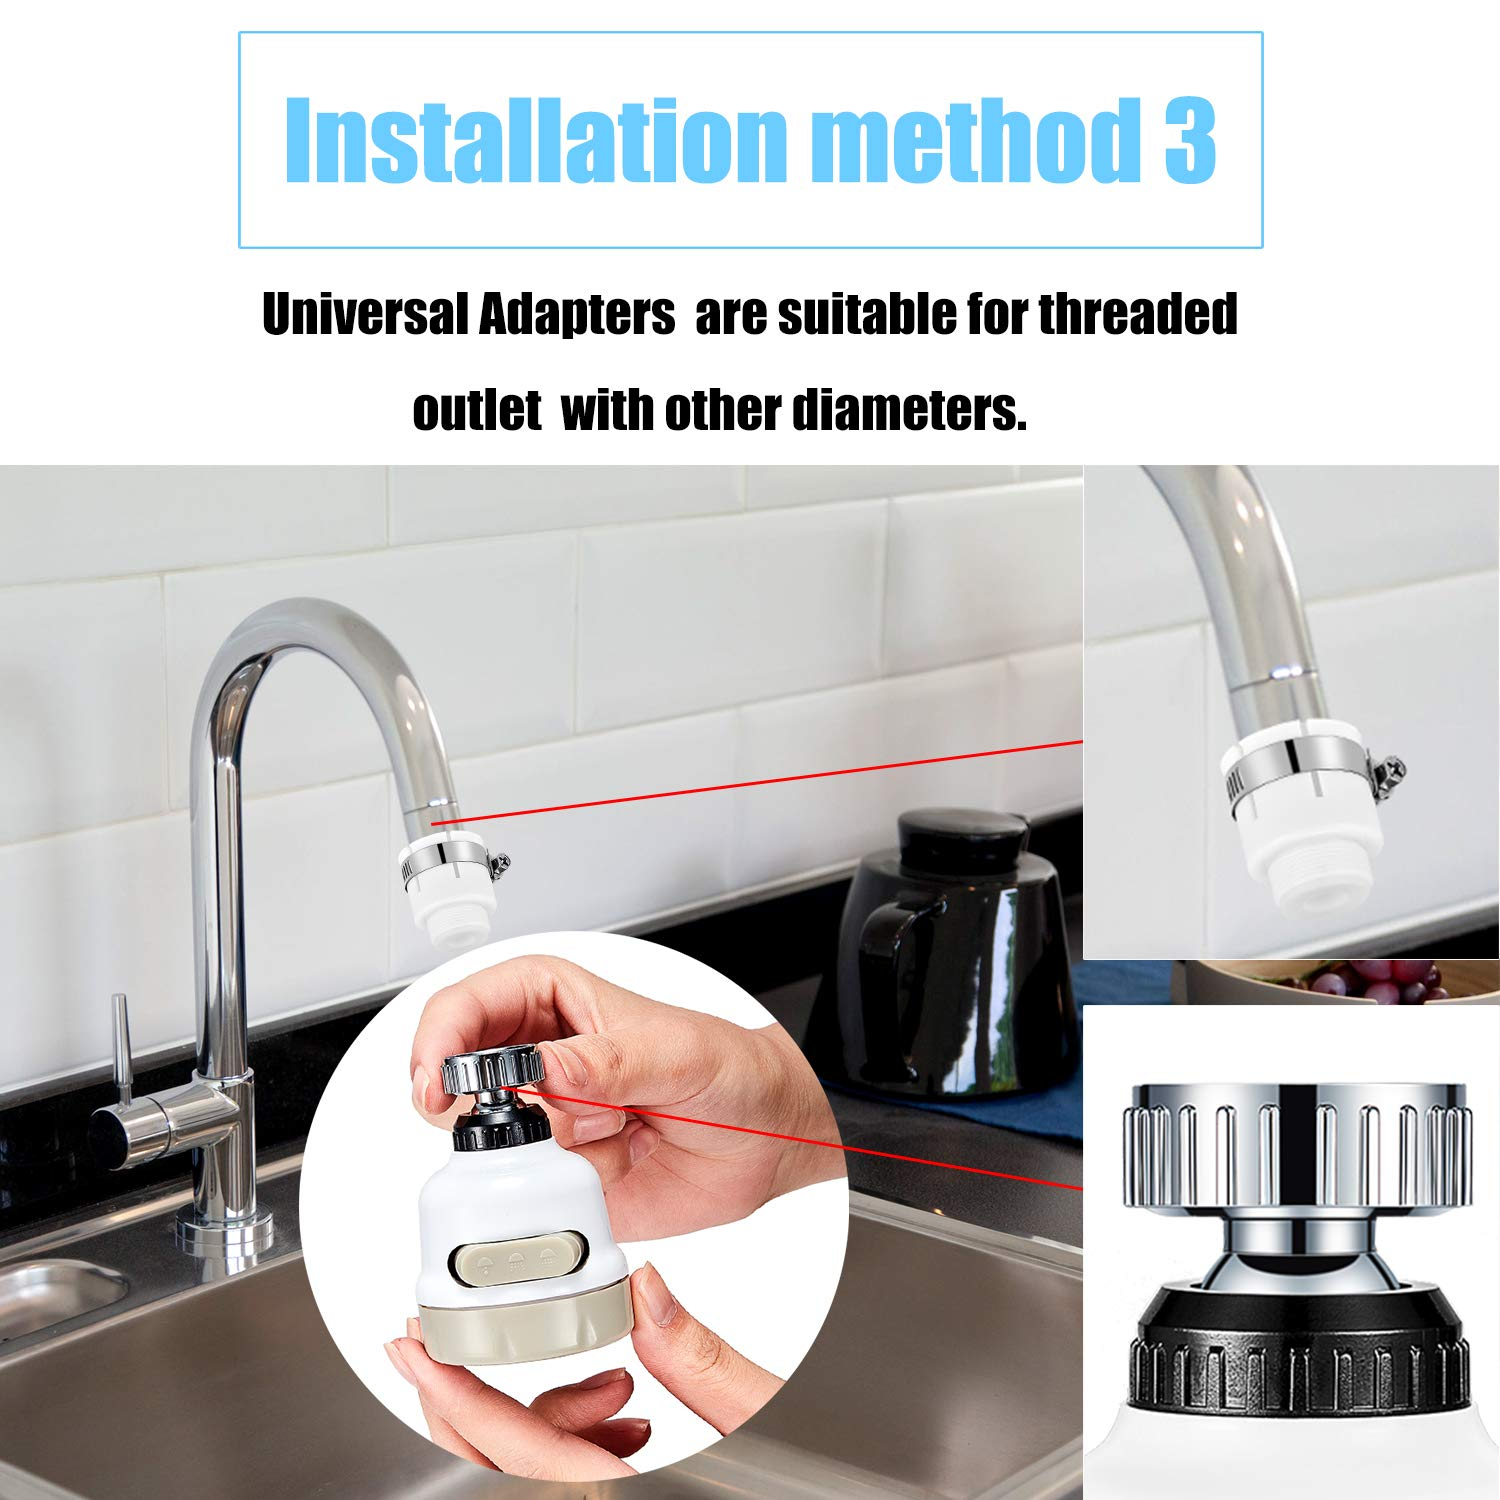 Kitchen Bath Fixtures 2 Pieces Moveable Kitchen Tap Head Water Spray 360 Degree Rotatable Faucet Water Sprayer Universal Adapter Lead Set Kitchen Sink Accessories Tools Tools Home Improvement Rdtech Co Rw